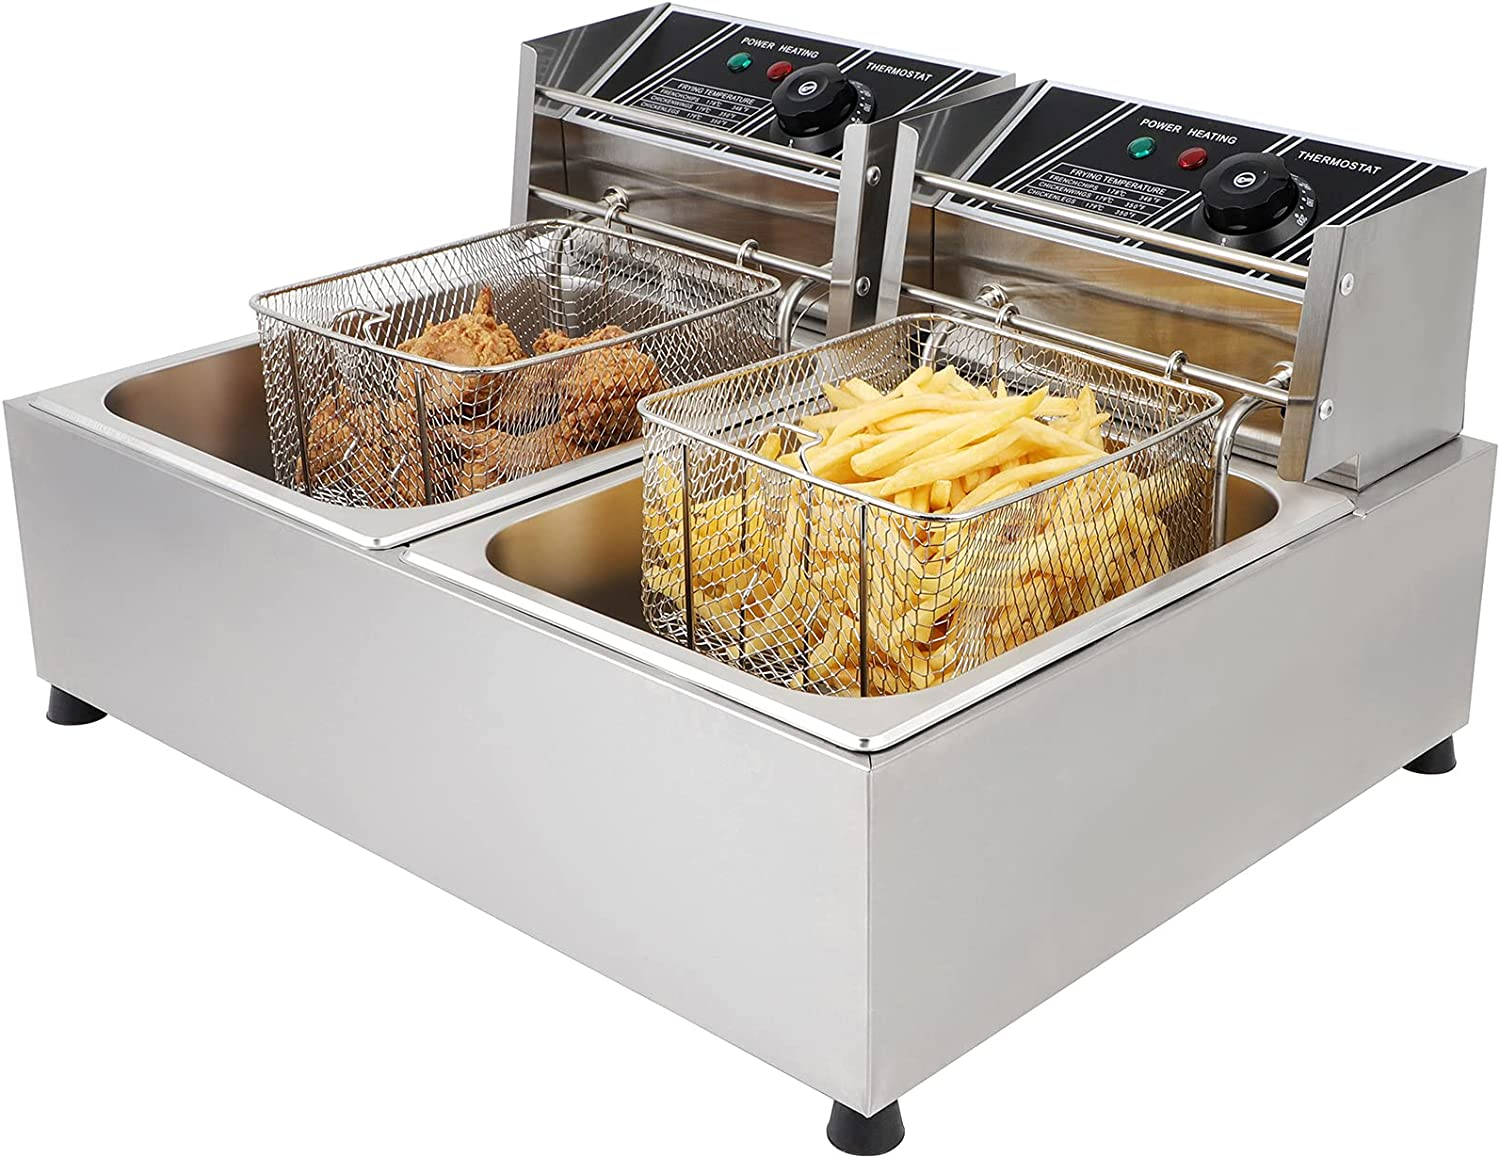 12.7QT/12L Electric Deep Fryer 5000W Dual Tank Stainless Steel Countertop Commercial Restaurant Adjustable Temp Time with 2 Removable Baskets